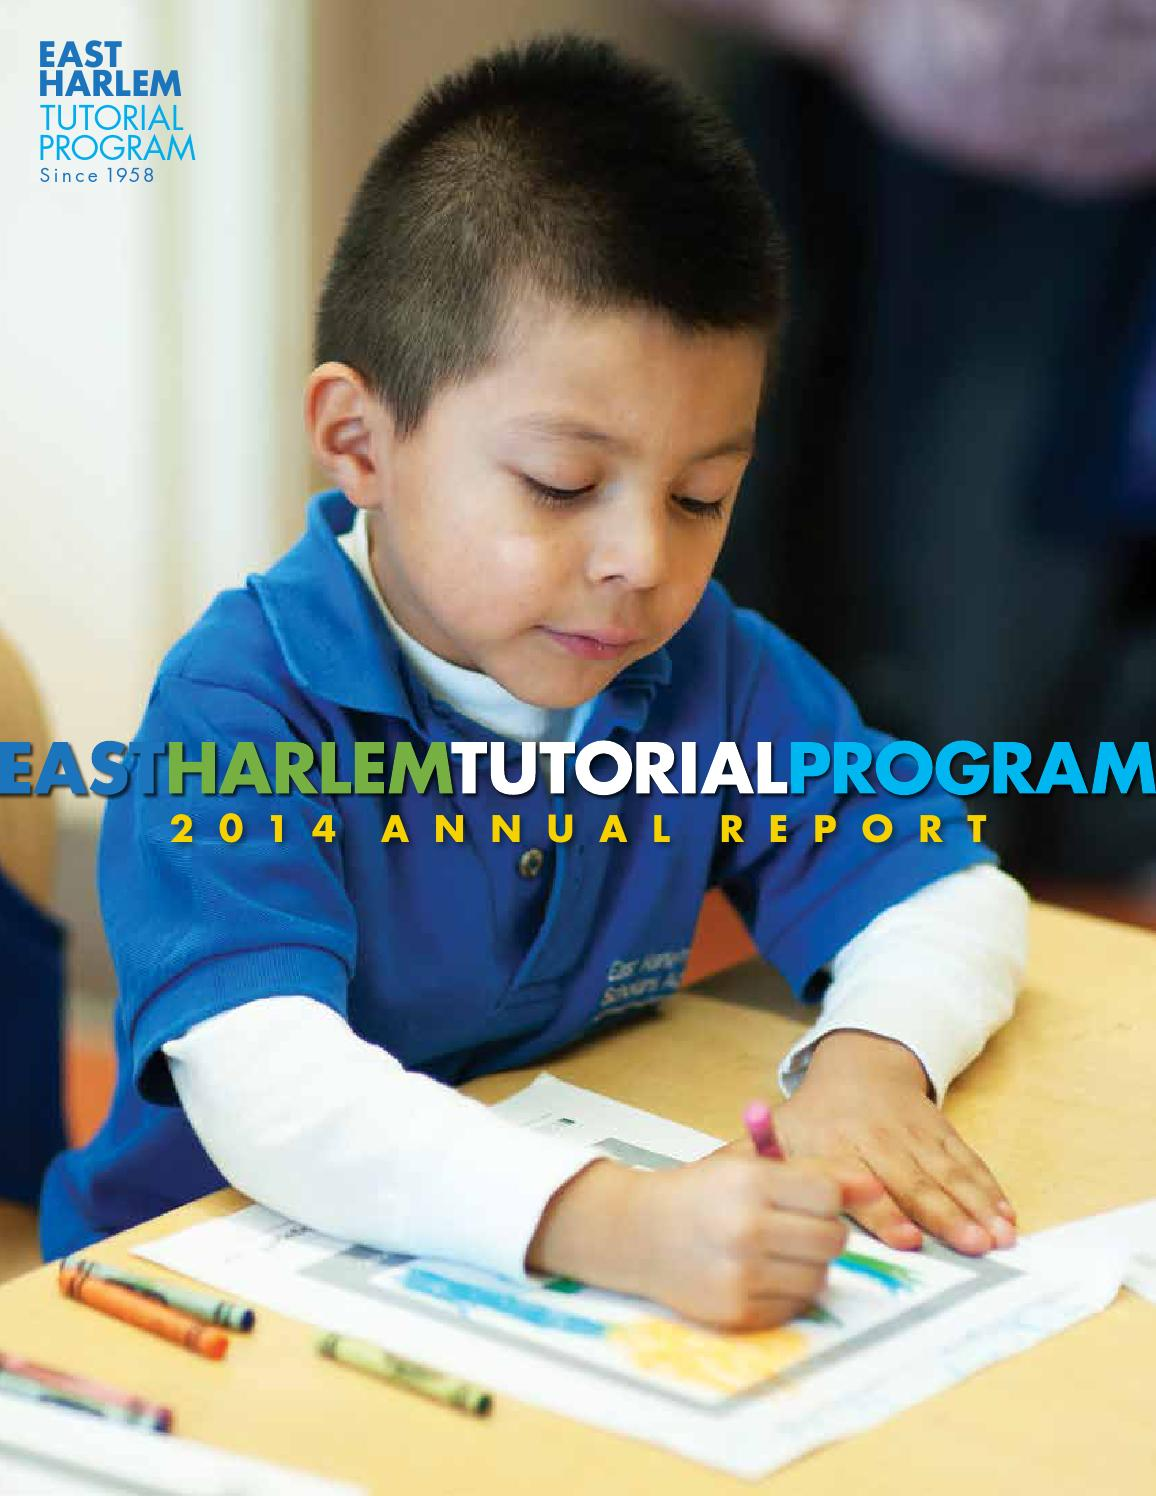 annual report by east harlem tutorial program issuu